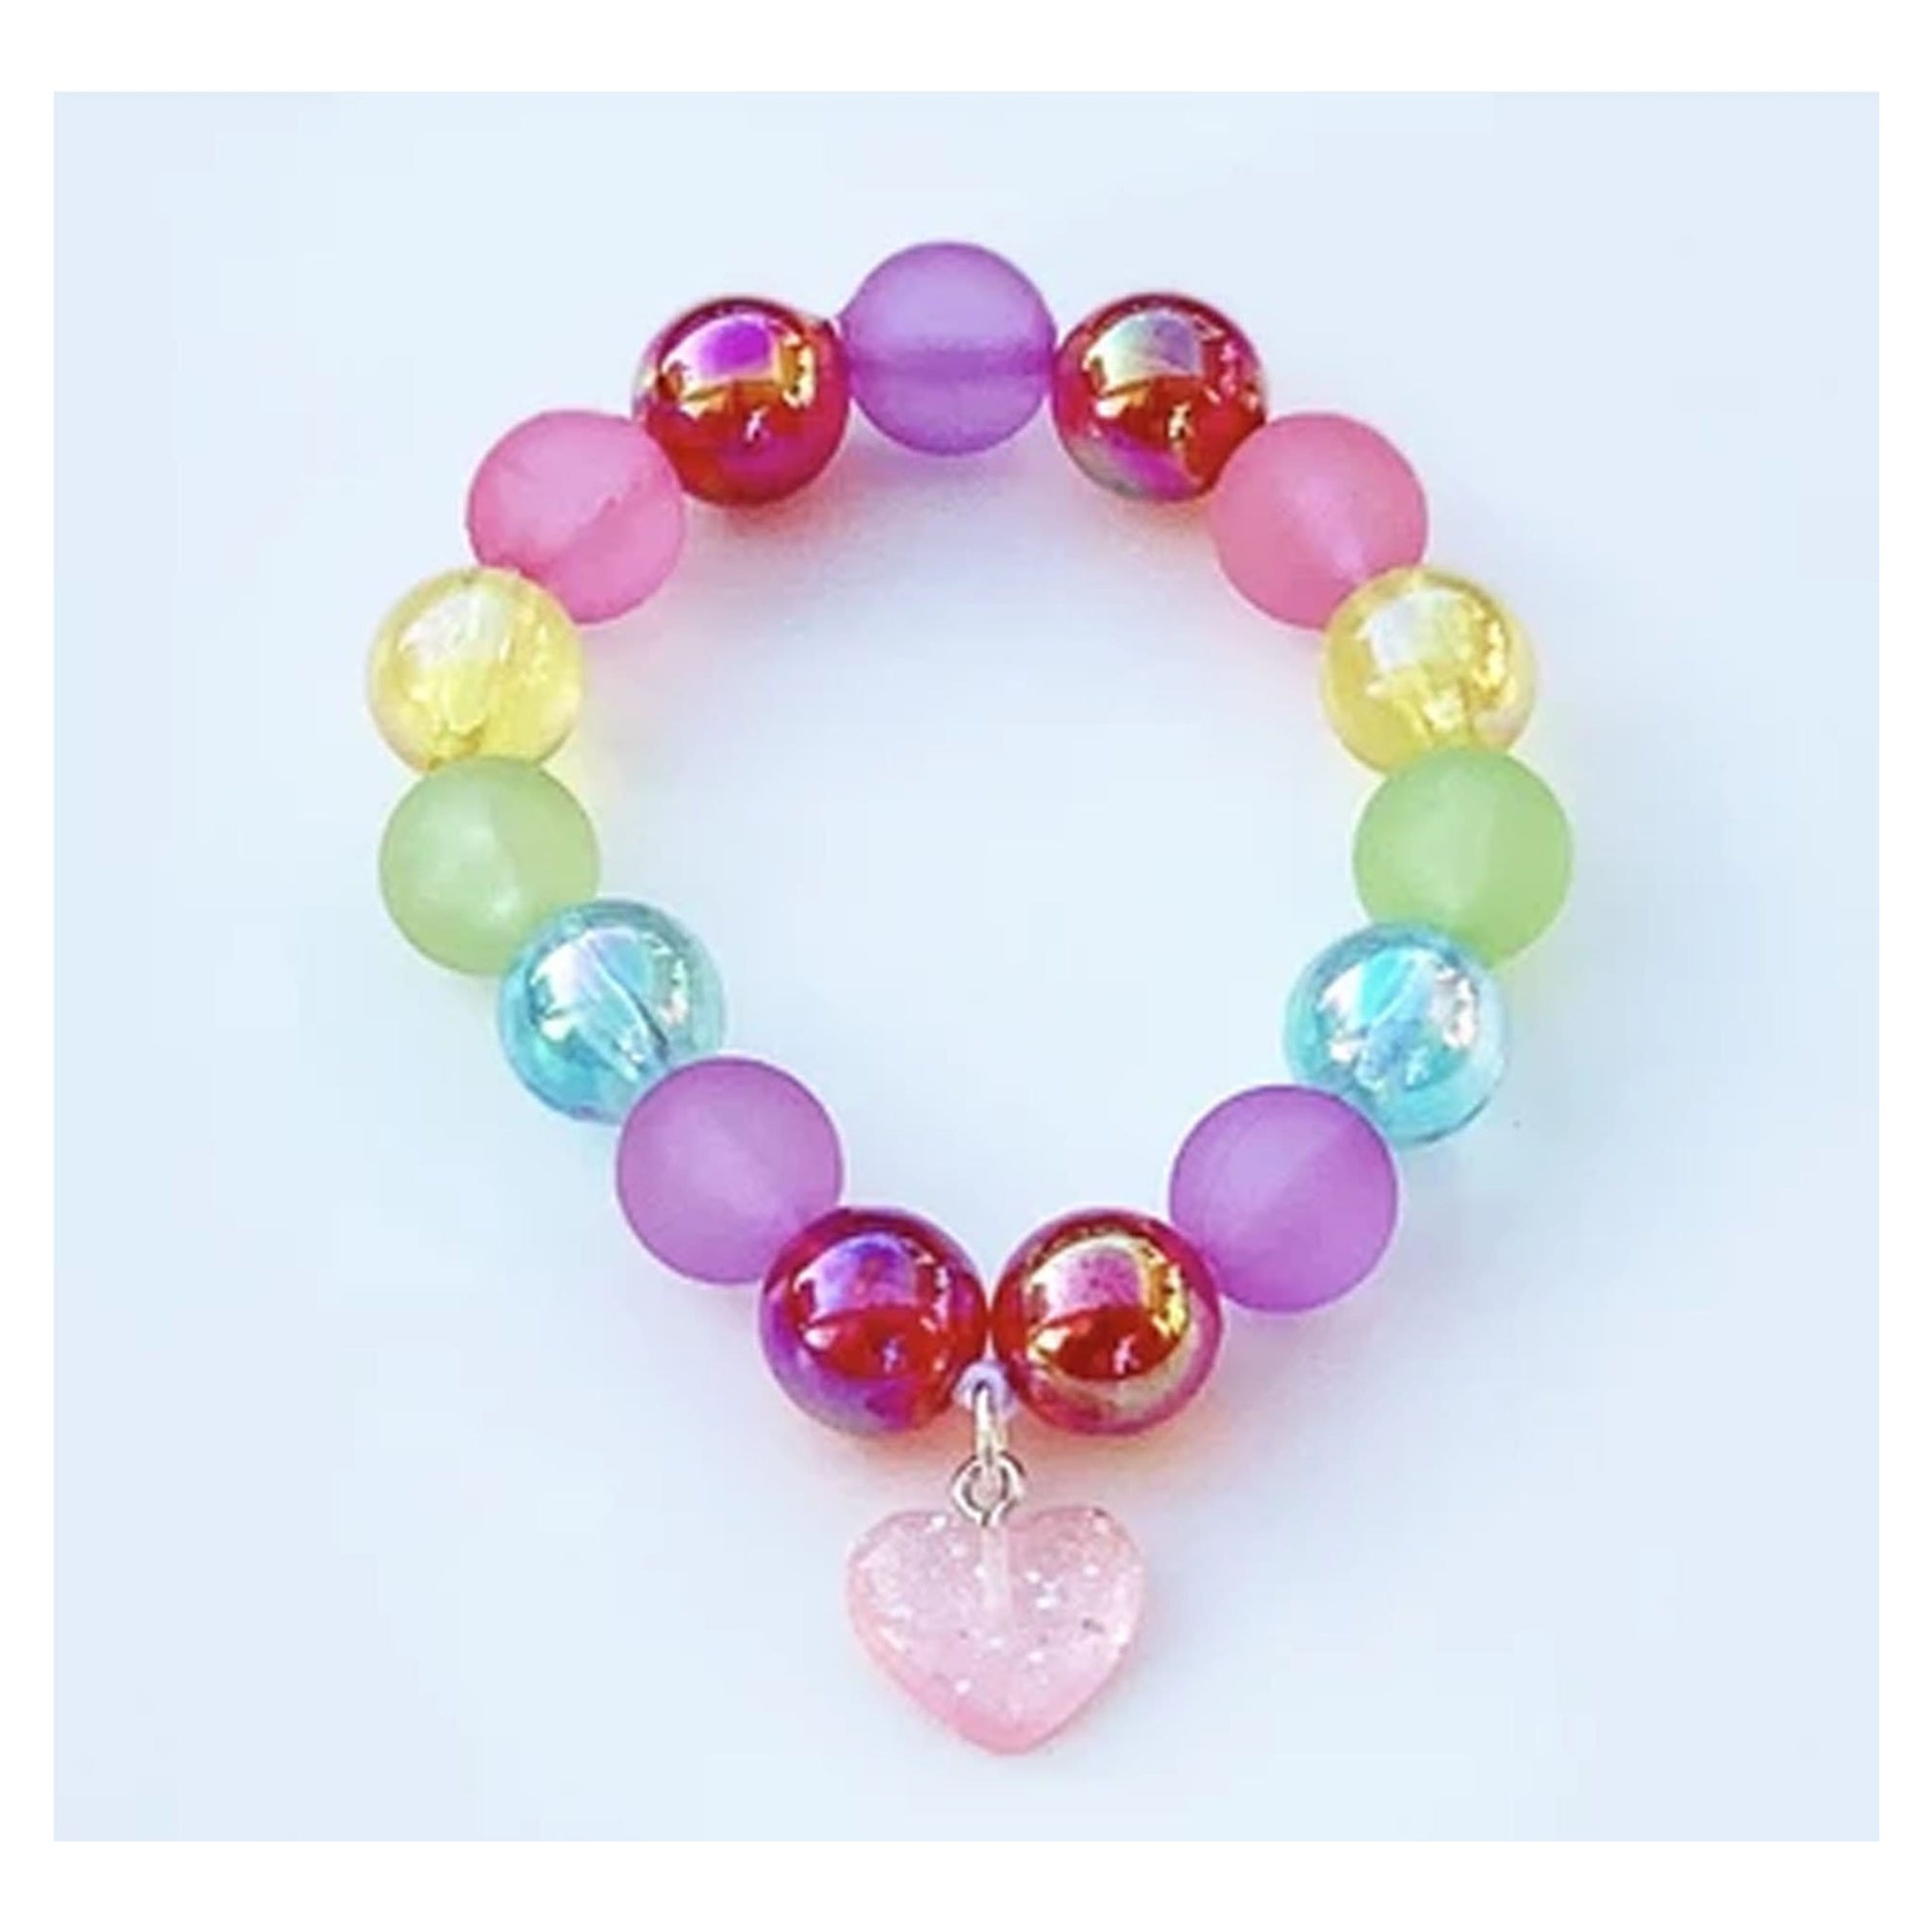 Sweet as Sugar Jellewery Beaded Rainbow Unicorn Bracelet